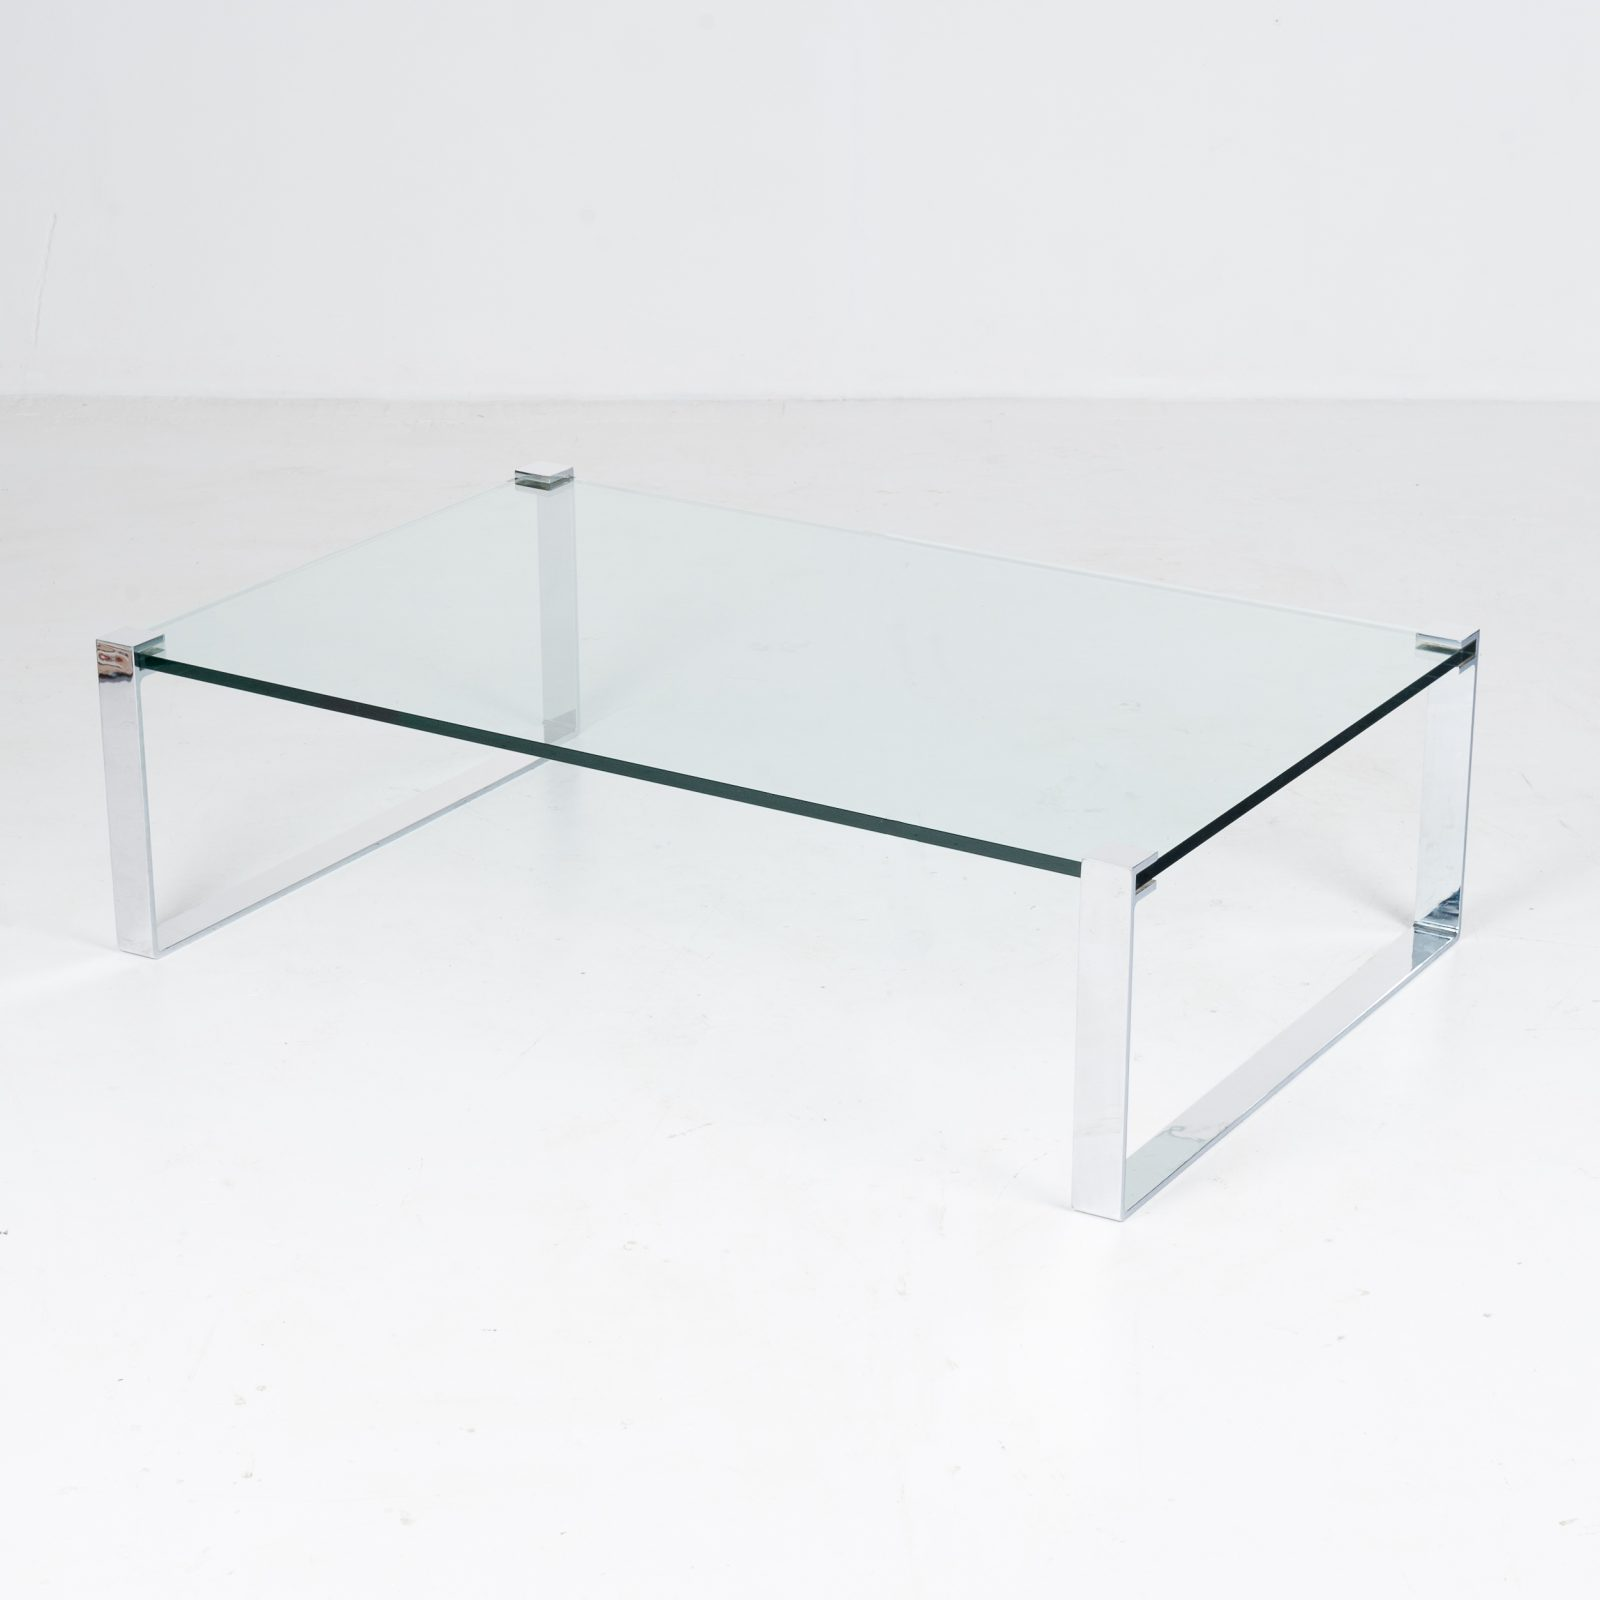 Model K 831 Rectangular Coffee Table With Glass And Polished Chrome By Friedrich Wilhelm Moller For Ronald Schmitt, 1970s, Germany 90